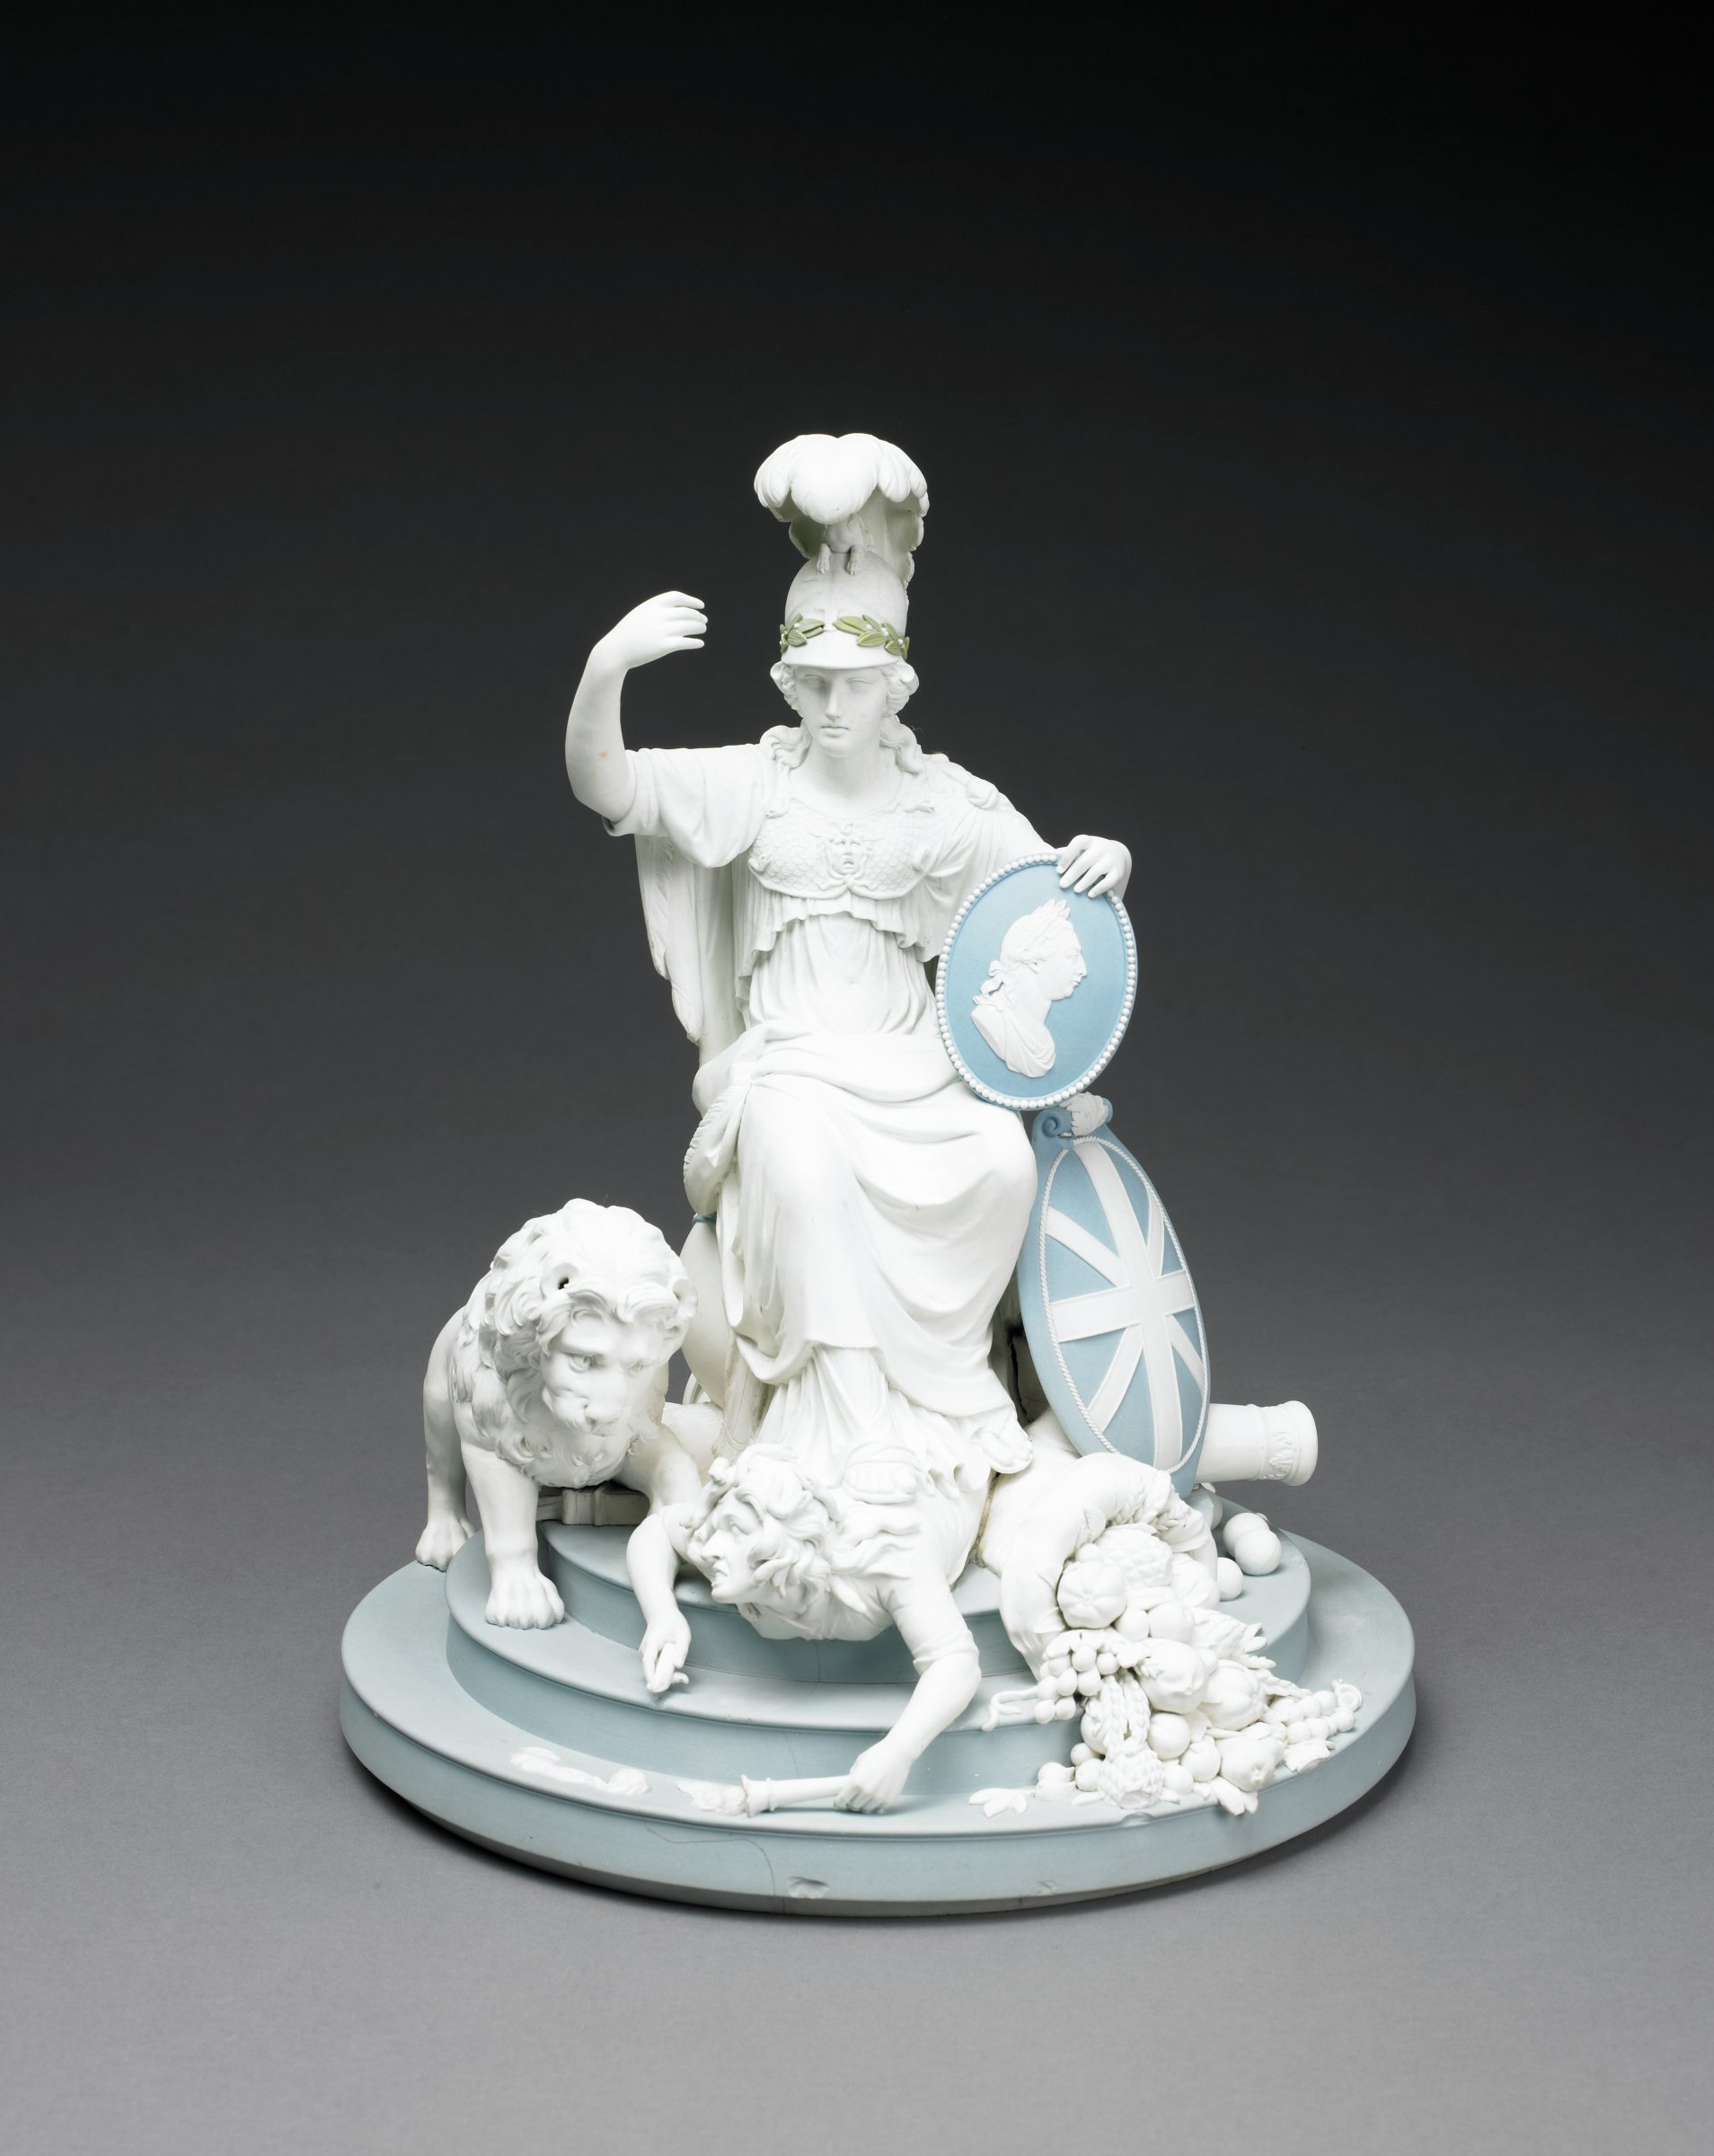 Large group of solid white and solid blue jasper with white and green jasper relief, on a stepped blue base the white figure of Minerva as Britannia Triumphant sits atop a globe encircled in blue with the signs of the zodiac, her helmet is plumed and crowned with a sphinx above a wreath of green laurel leaves; Britannia is draped in a classical gown with cape and wears a breastplate with the winged head of Minerva, her left hand supports a blue and white portrait medallion of King George III as a Roman emperor, which rests on her knee, and her right hand is raised -- it originally held a trident;  Britannia's sandaled feet rest upon France, represented as a distressed and angry fallen female figure of white jasper holding a torch in each hand (the right hand torch is broken, the flame of the left is partially missing), the watchful white jasper British lion stands at Britannia's right, at her left is the blue and white shield of Great Britain as well as a large white cornucopia overflowing with fruits, vegetables, and grains as symbols of strength, victory, and plenty; behind Britannia are various symbols of war and the British navy, all in white jasper: a cannon and cannon balls, a flag, a ship's prow and anchor, a breastplate, helmet, and sword, a shield, and a quiver of arrows.